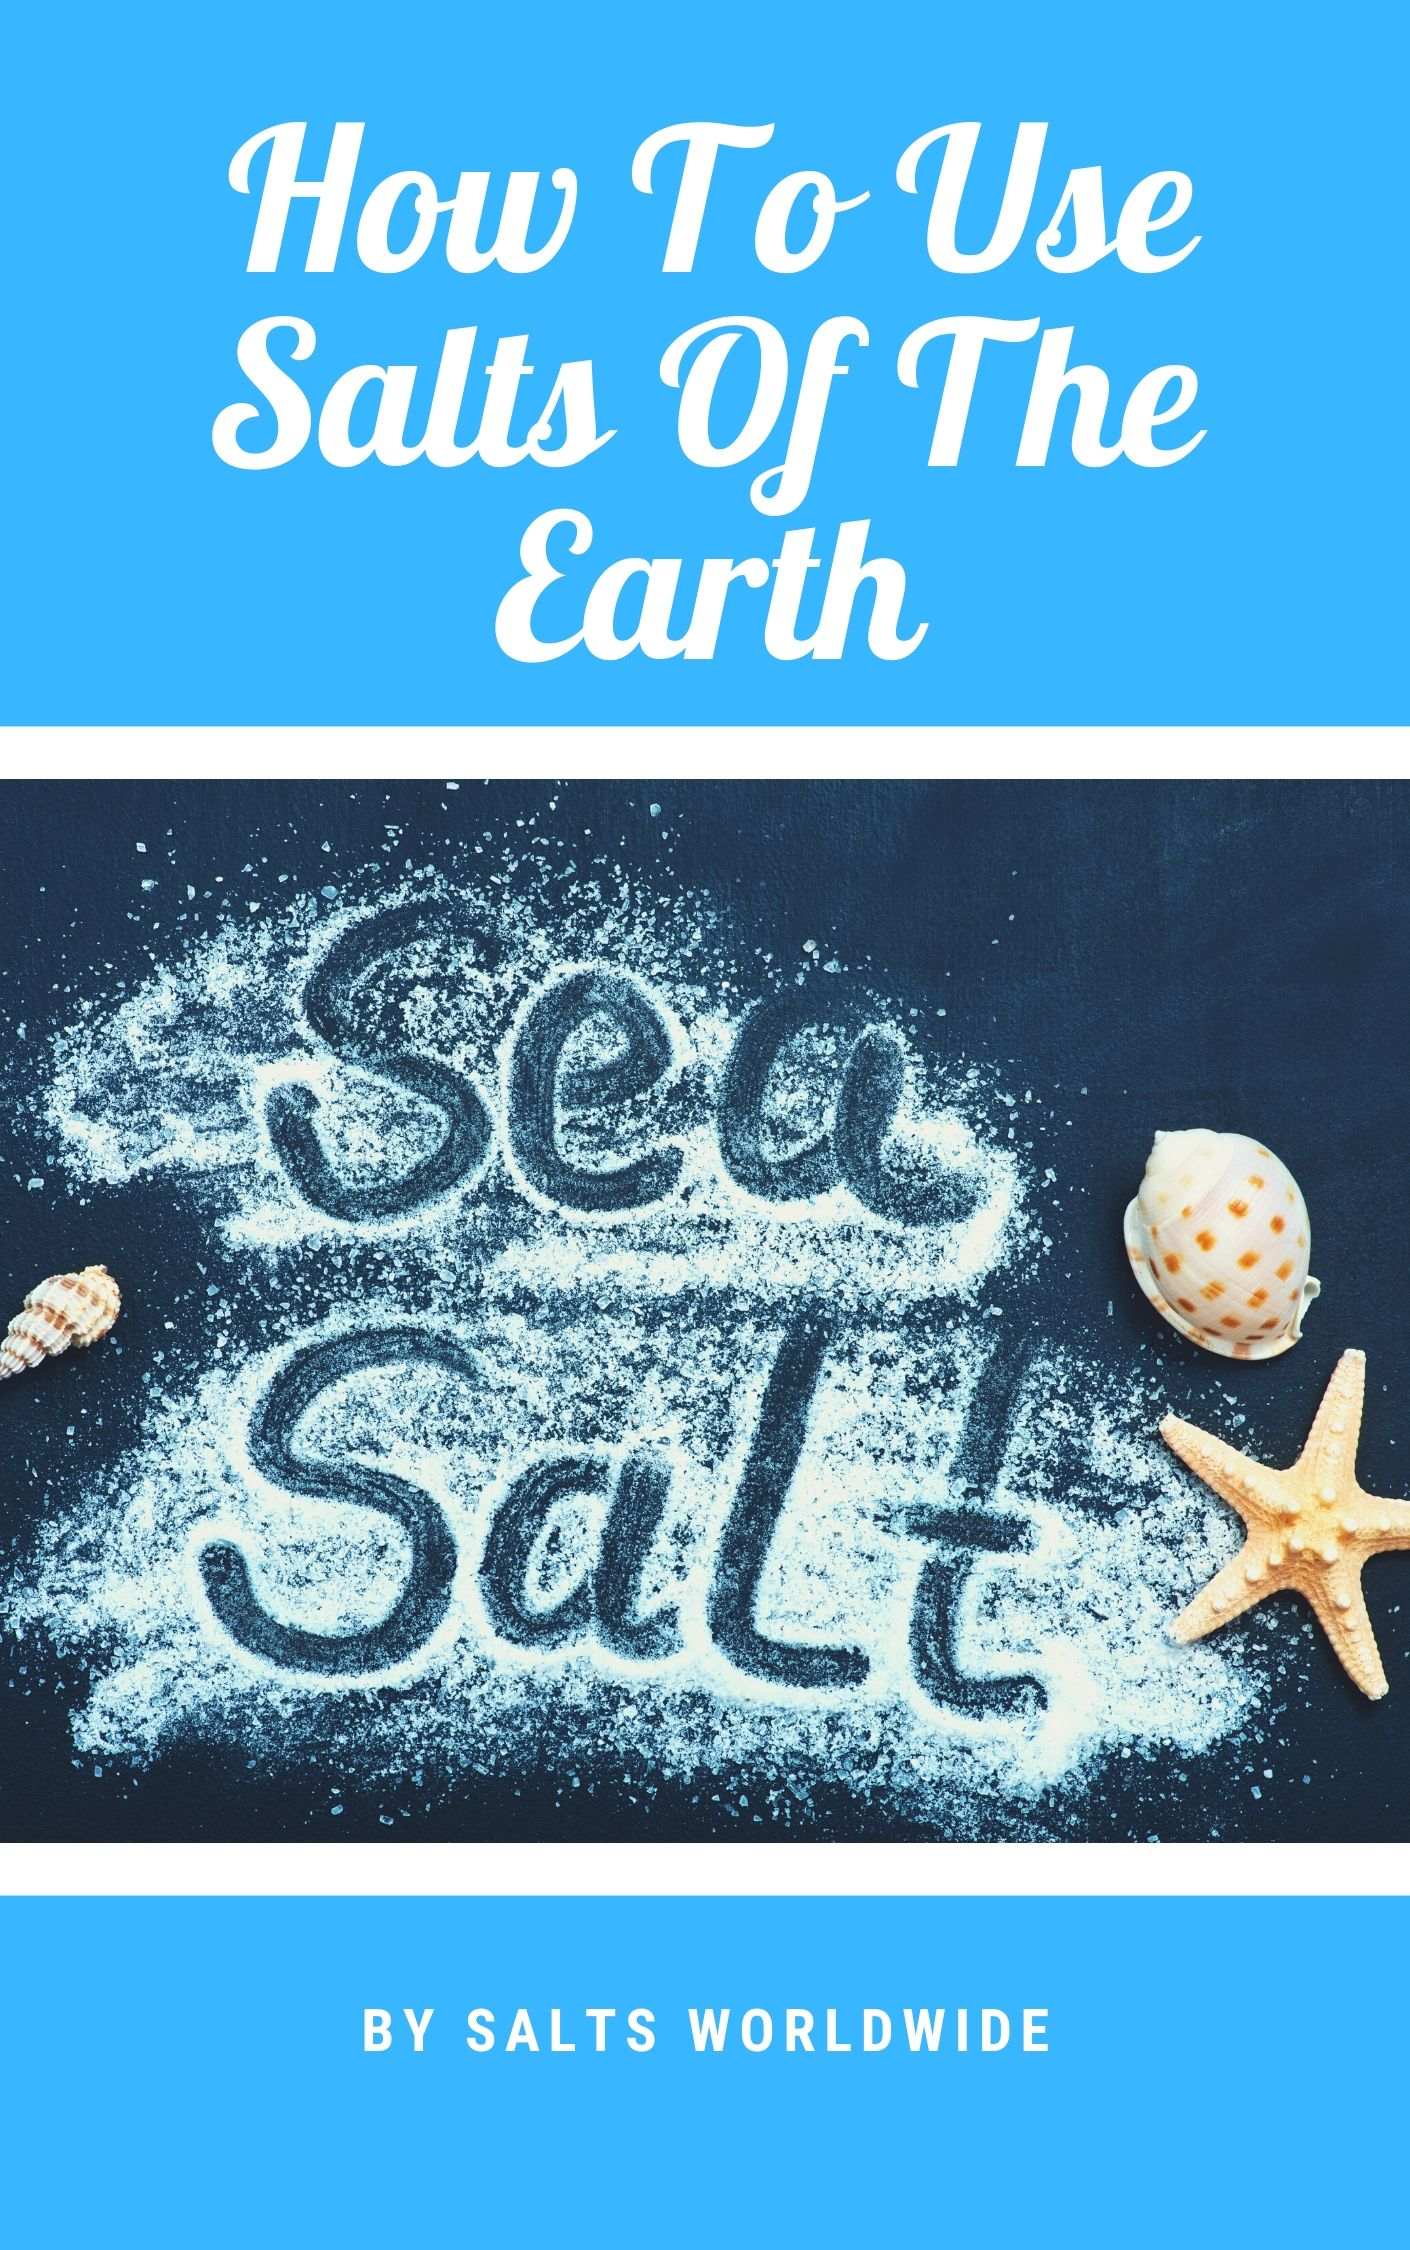 Salts Worldwide releases new eBook How To Use Salts Of The Earth and gives it away free